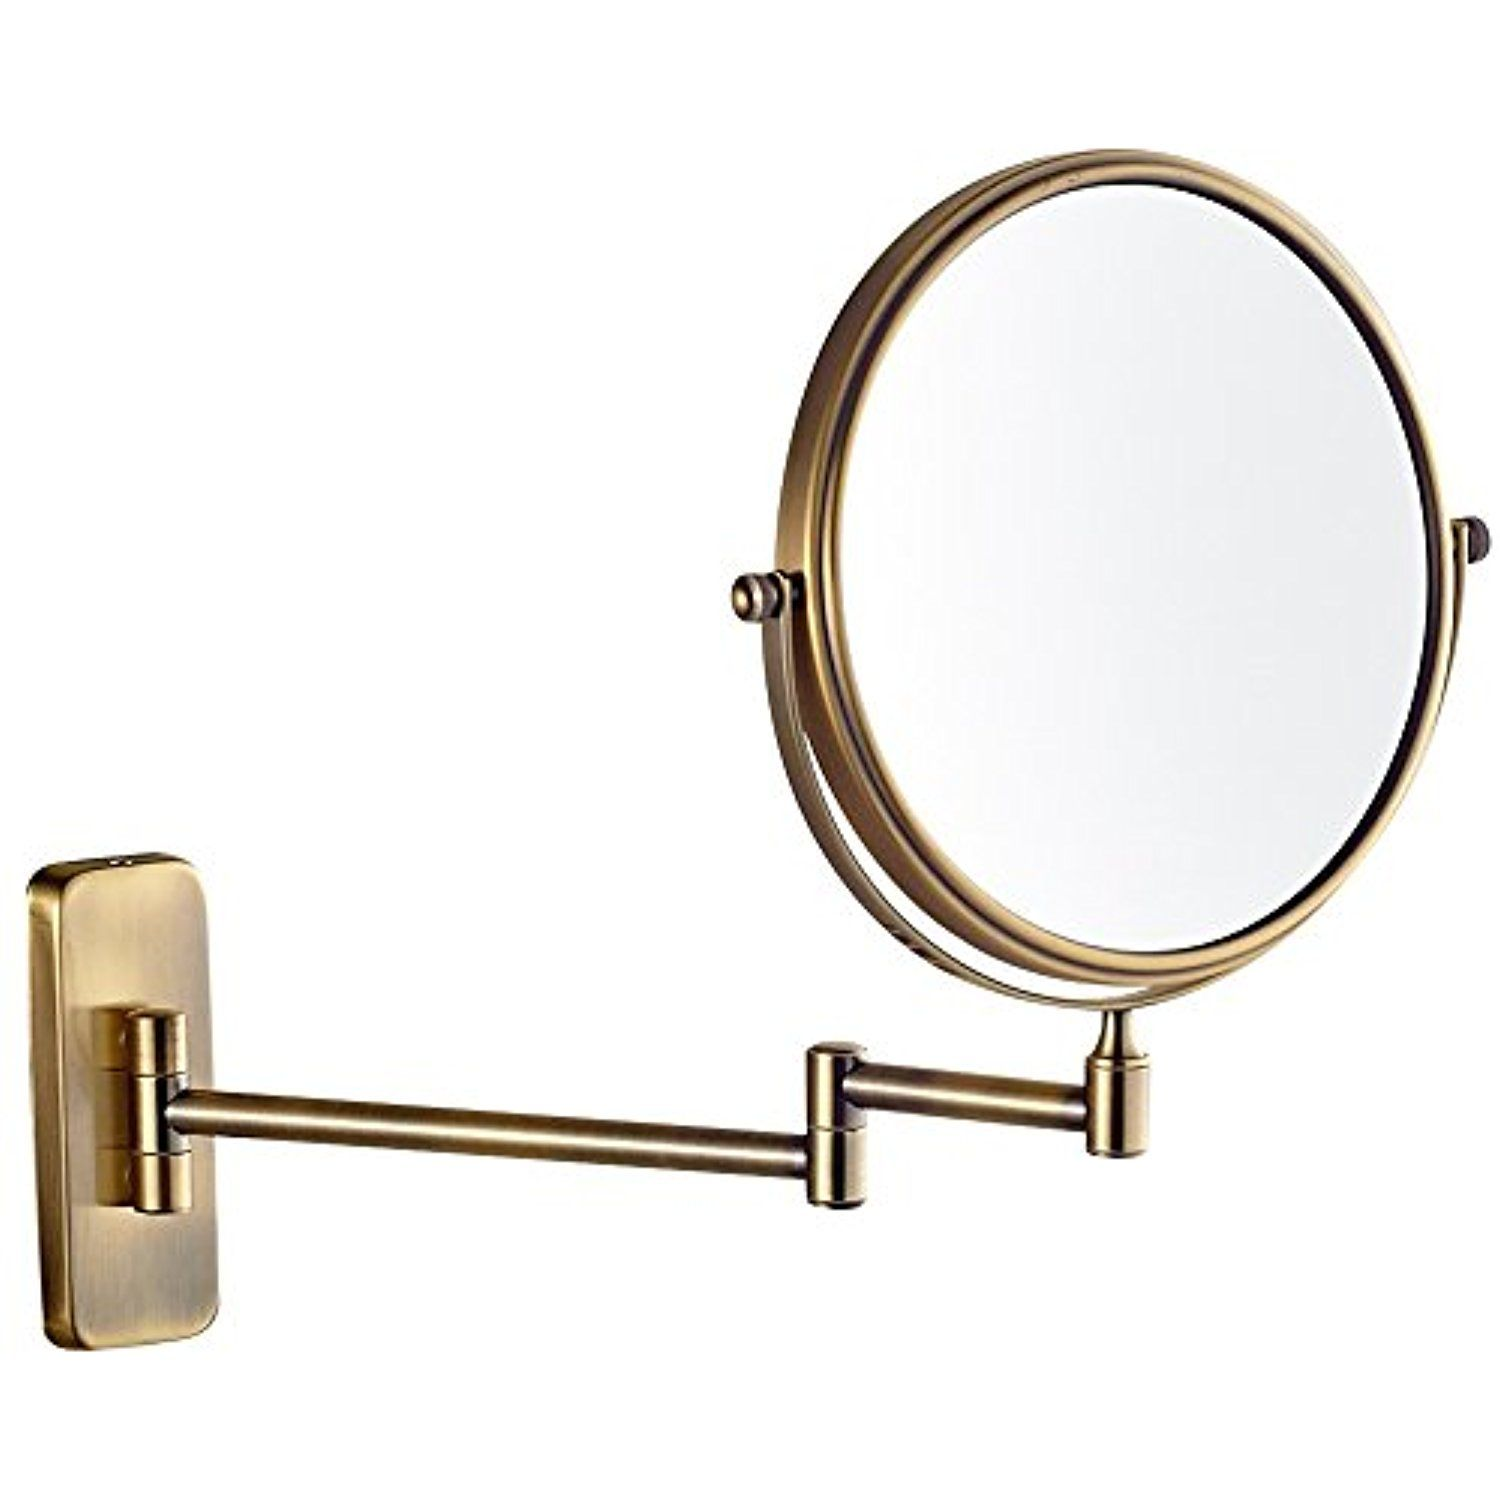 Gurun 8 Inch 2 Face Wall Mount Makeup Mirrors With 5x Magnification Antique Brass Finished M140 Wall Mounted Makeup Mirror Makeup Mirrors Chrome Makeup Mirror Wall mounted make up mirrors